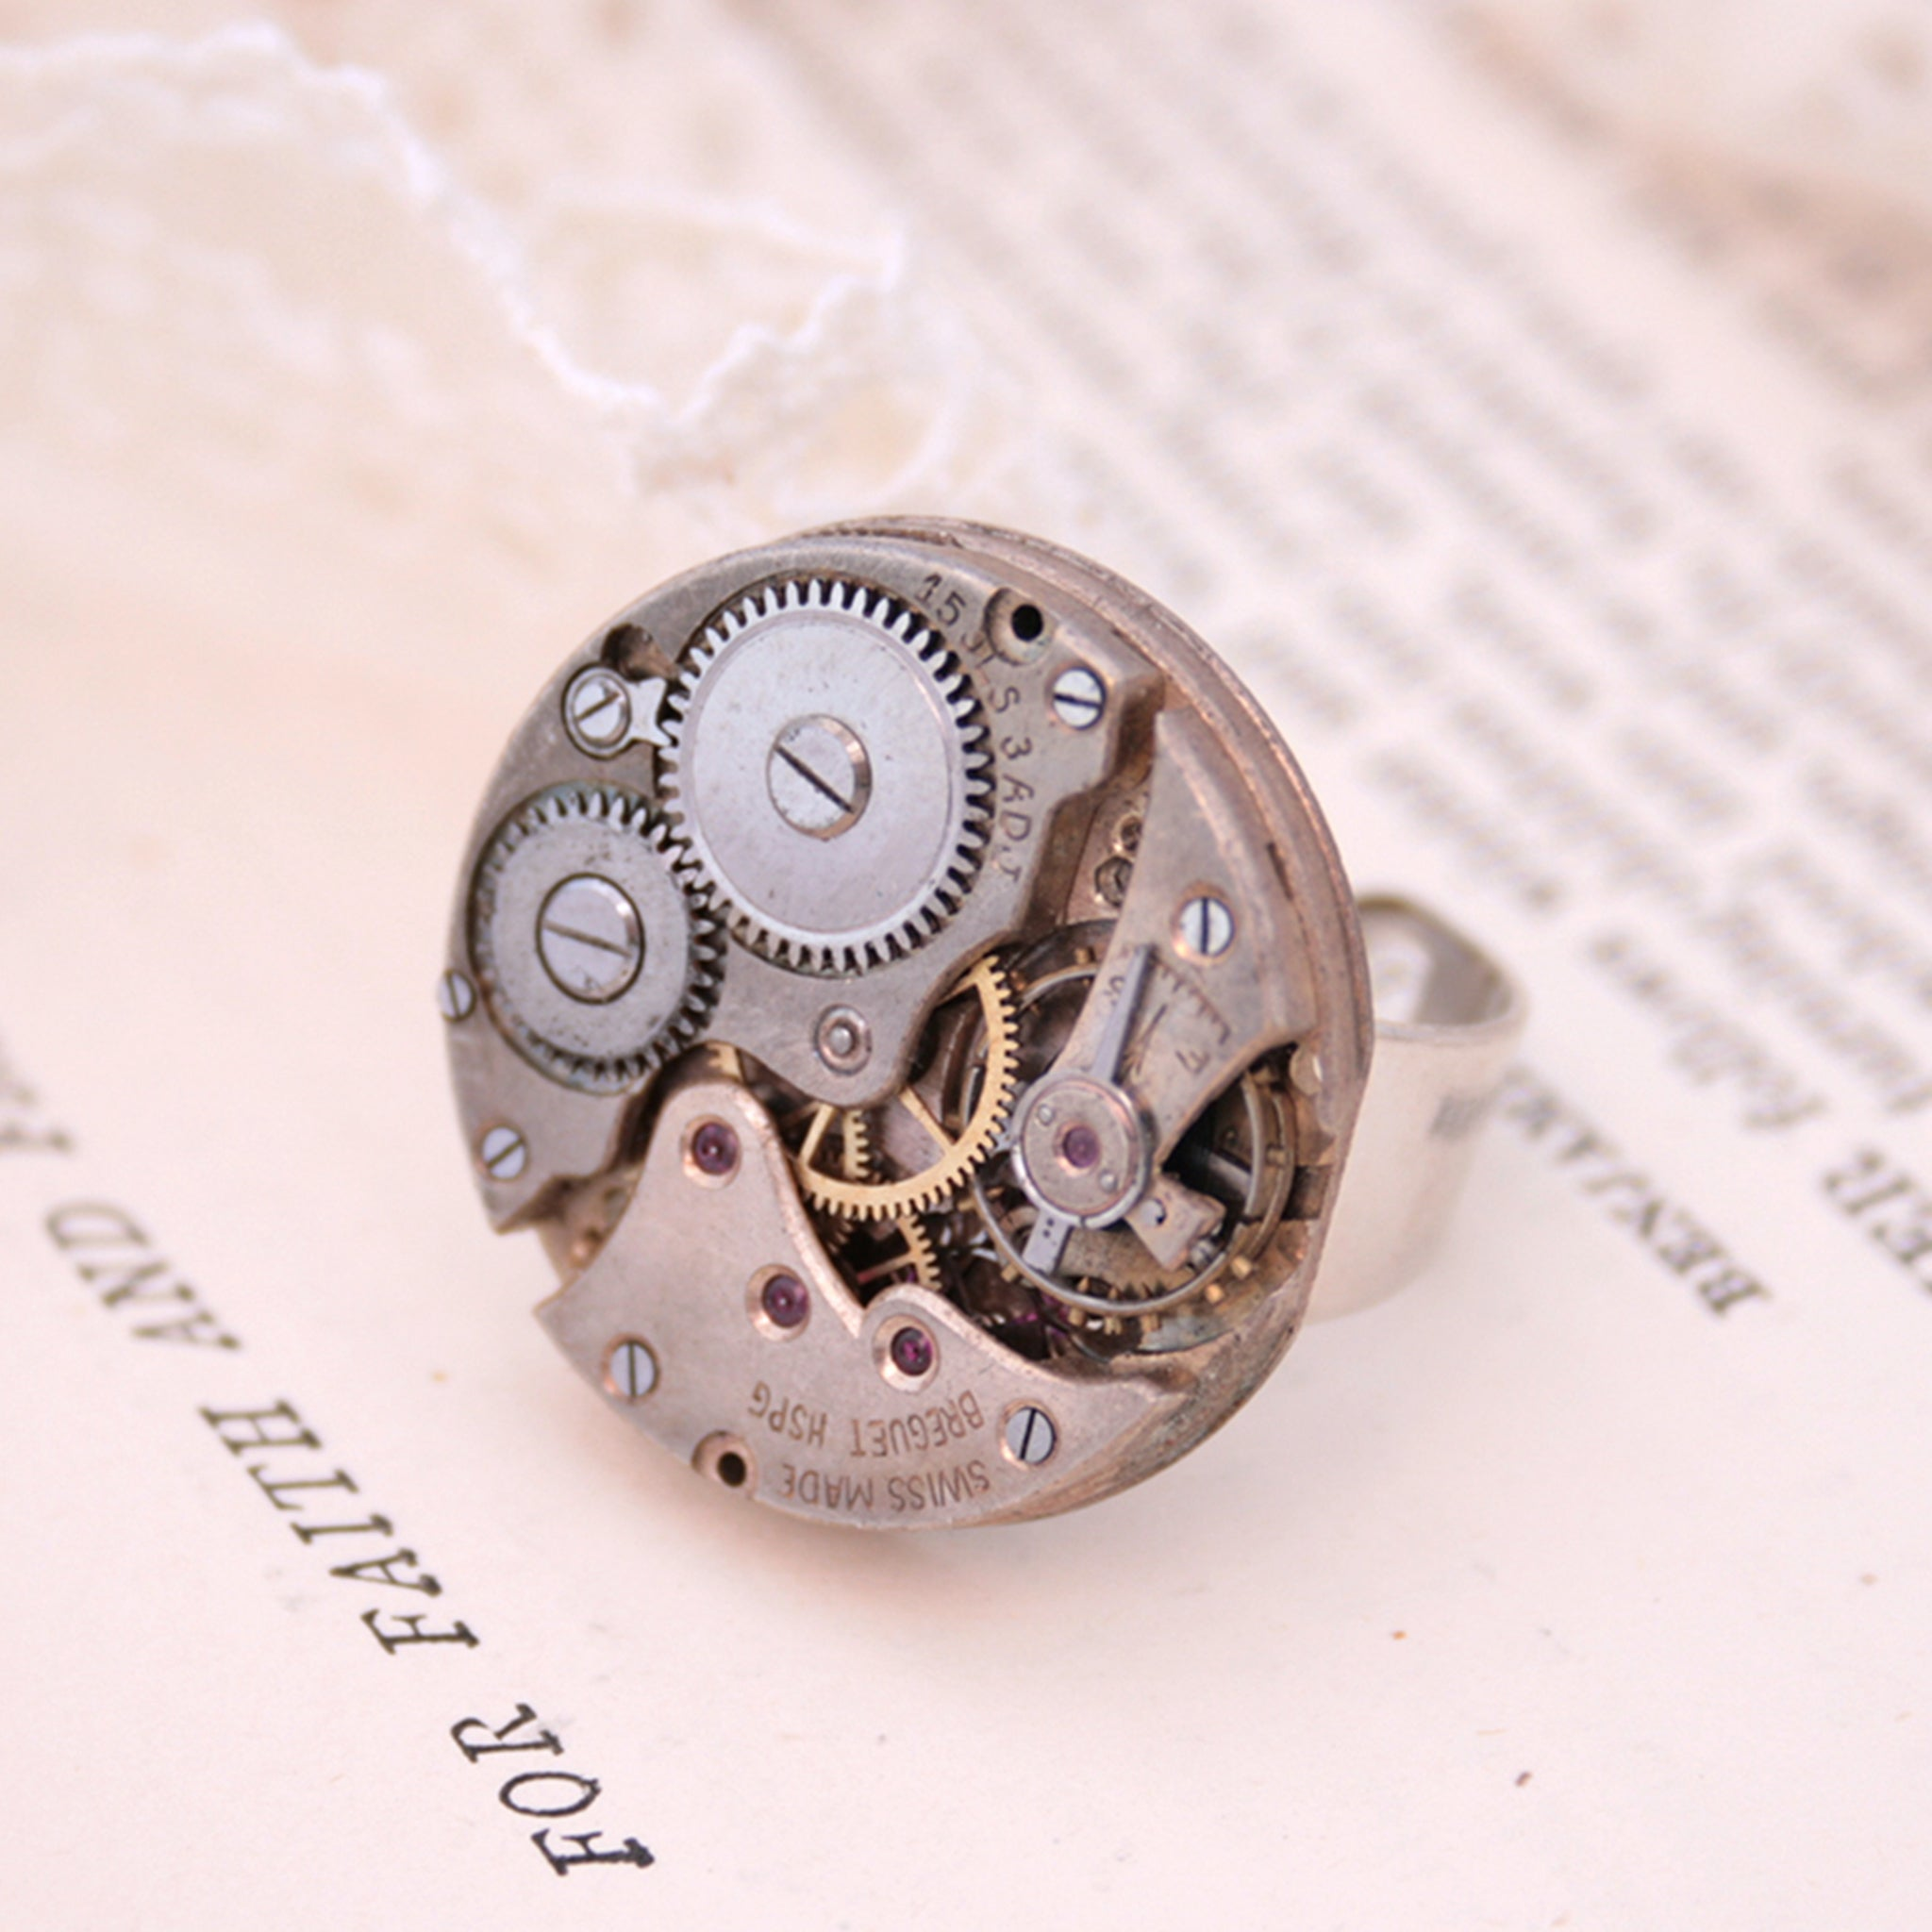 stunning steampunk ring has been made using authentic large wristwatch inside in old silver color.